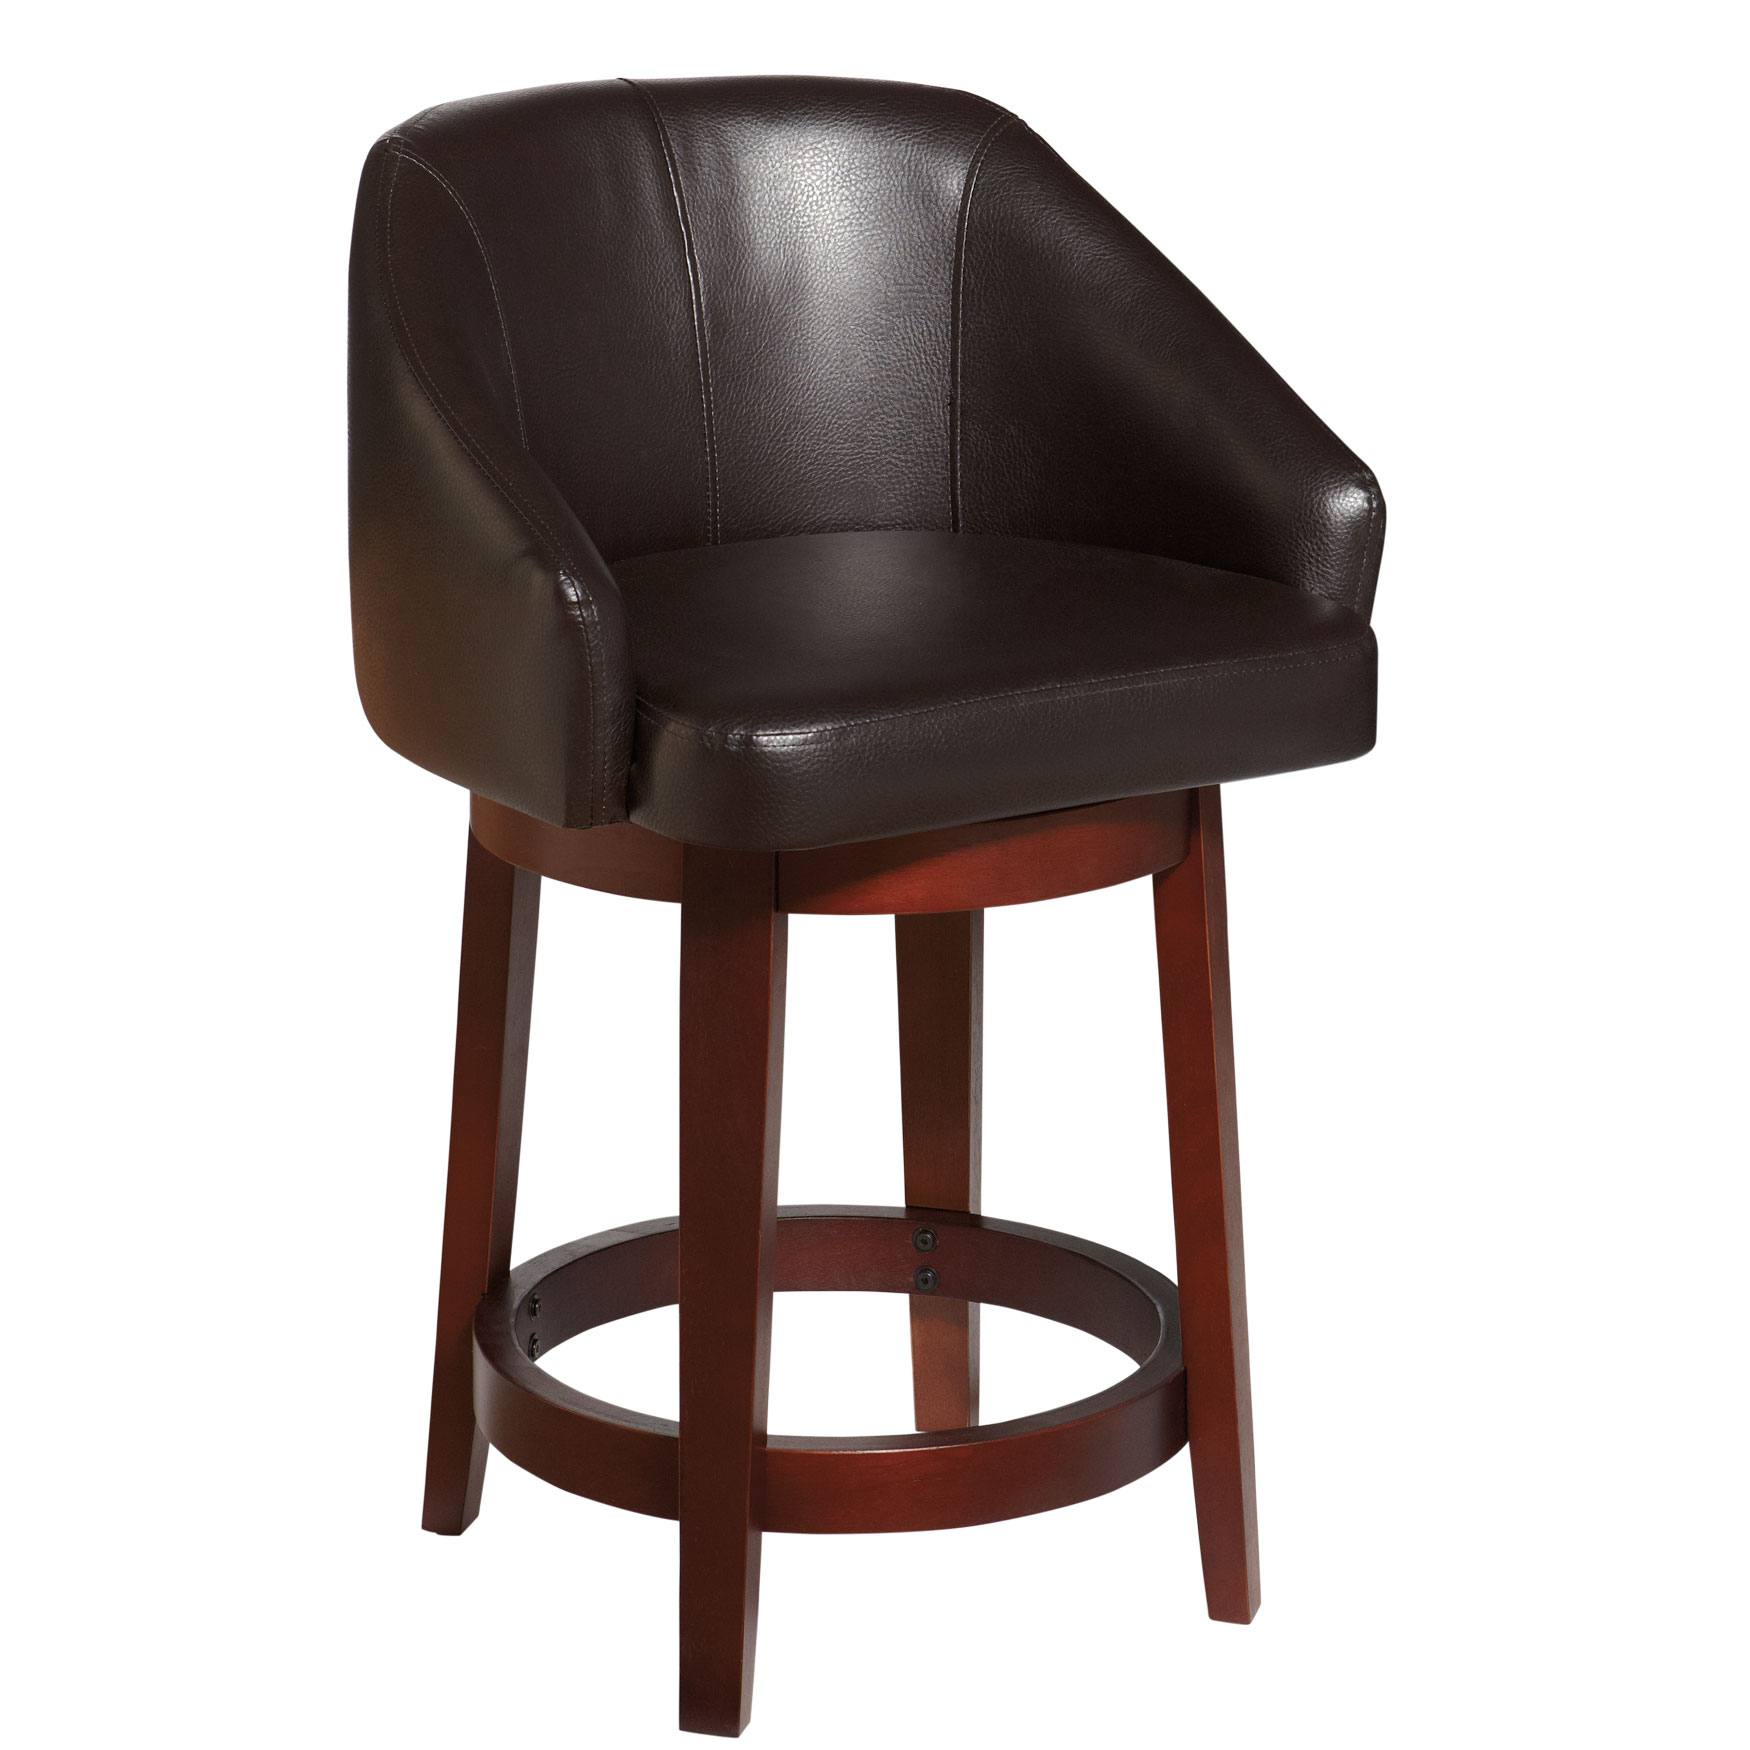 Nina Extra Wide Swivel Counter Stool, DARK BROWN